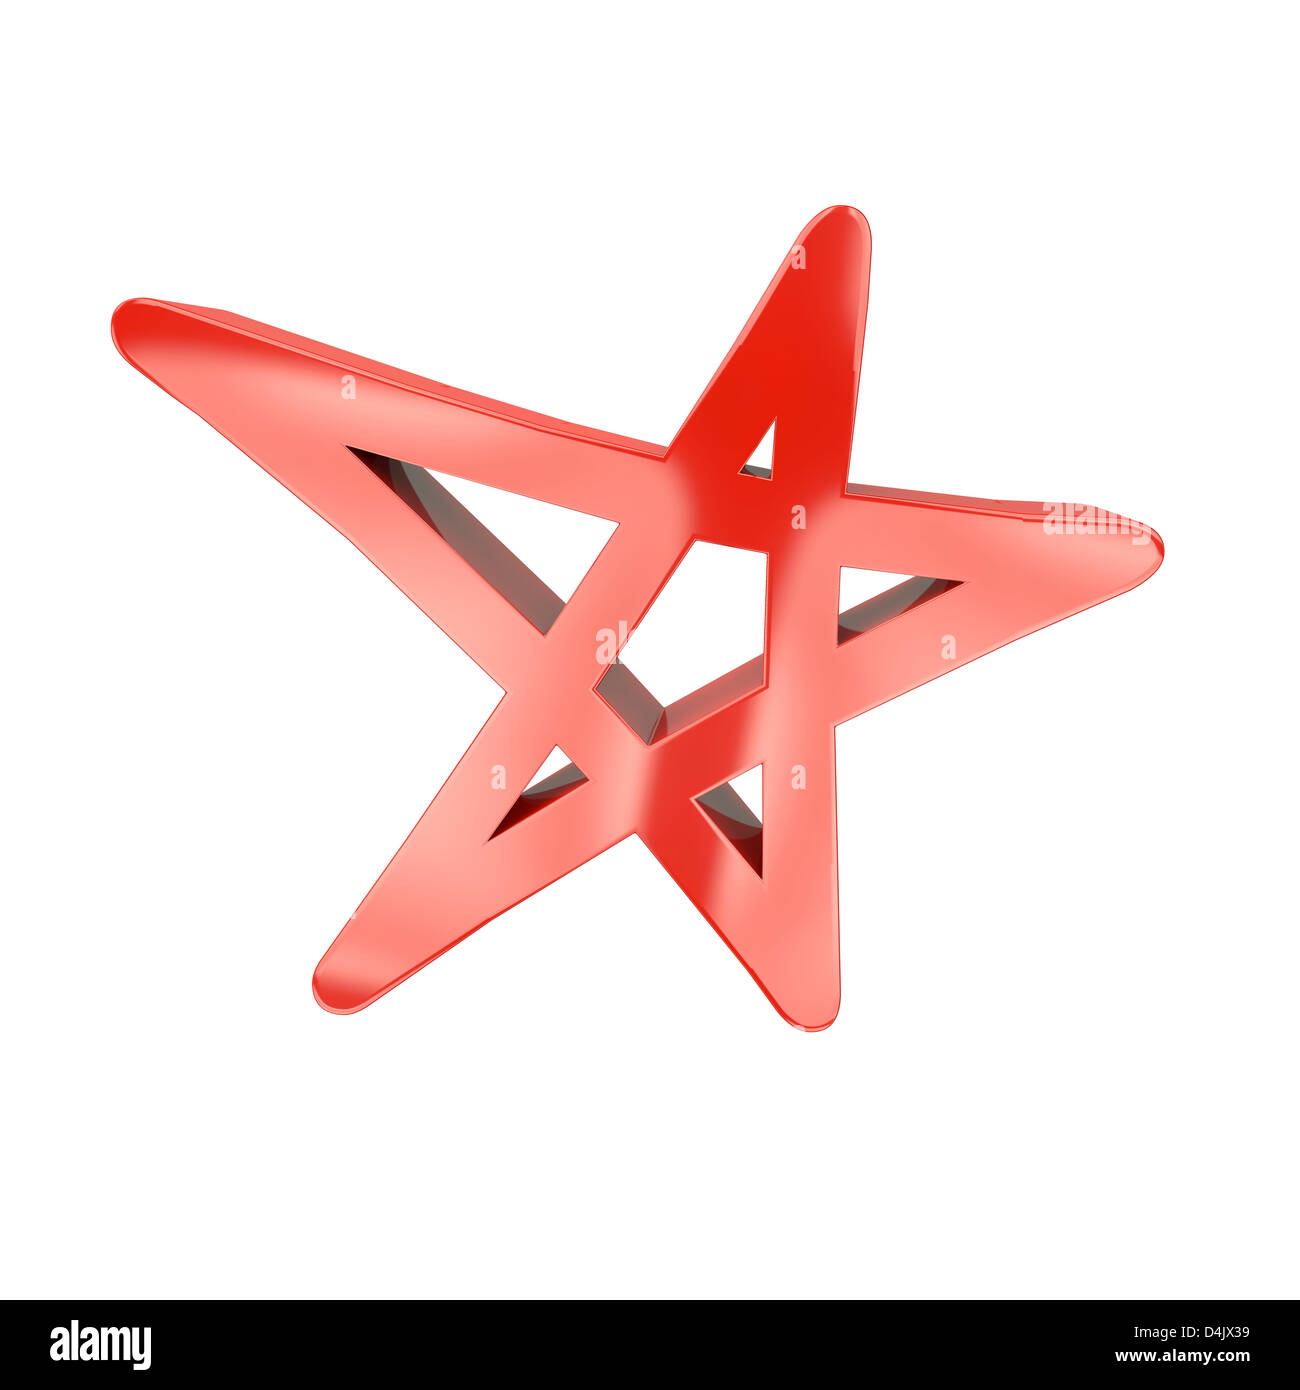 The Star Of David Symbol Of Judaism And The History Stock Photo